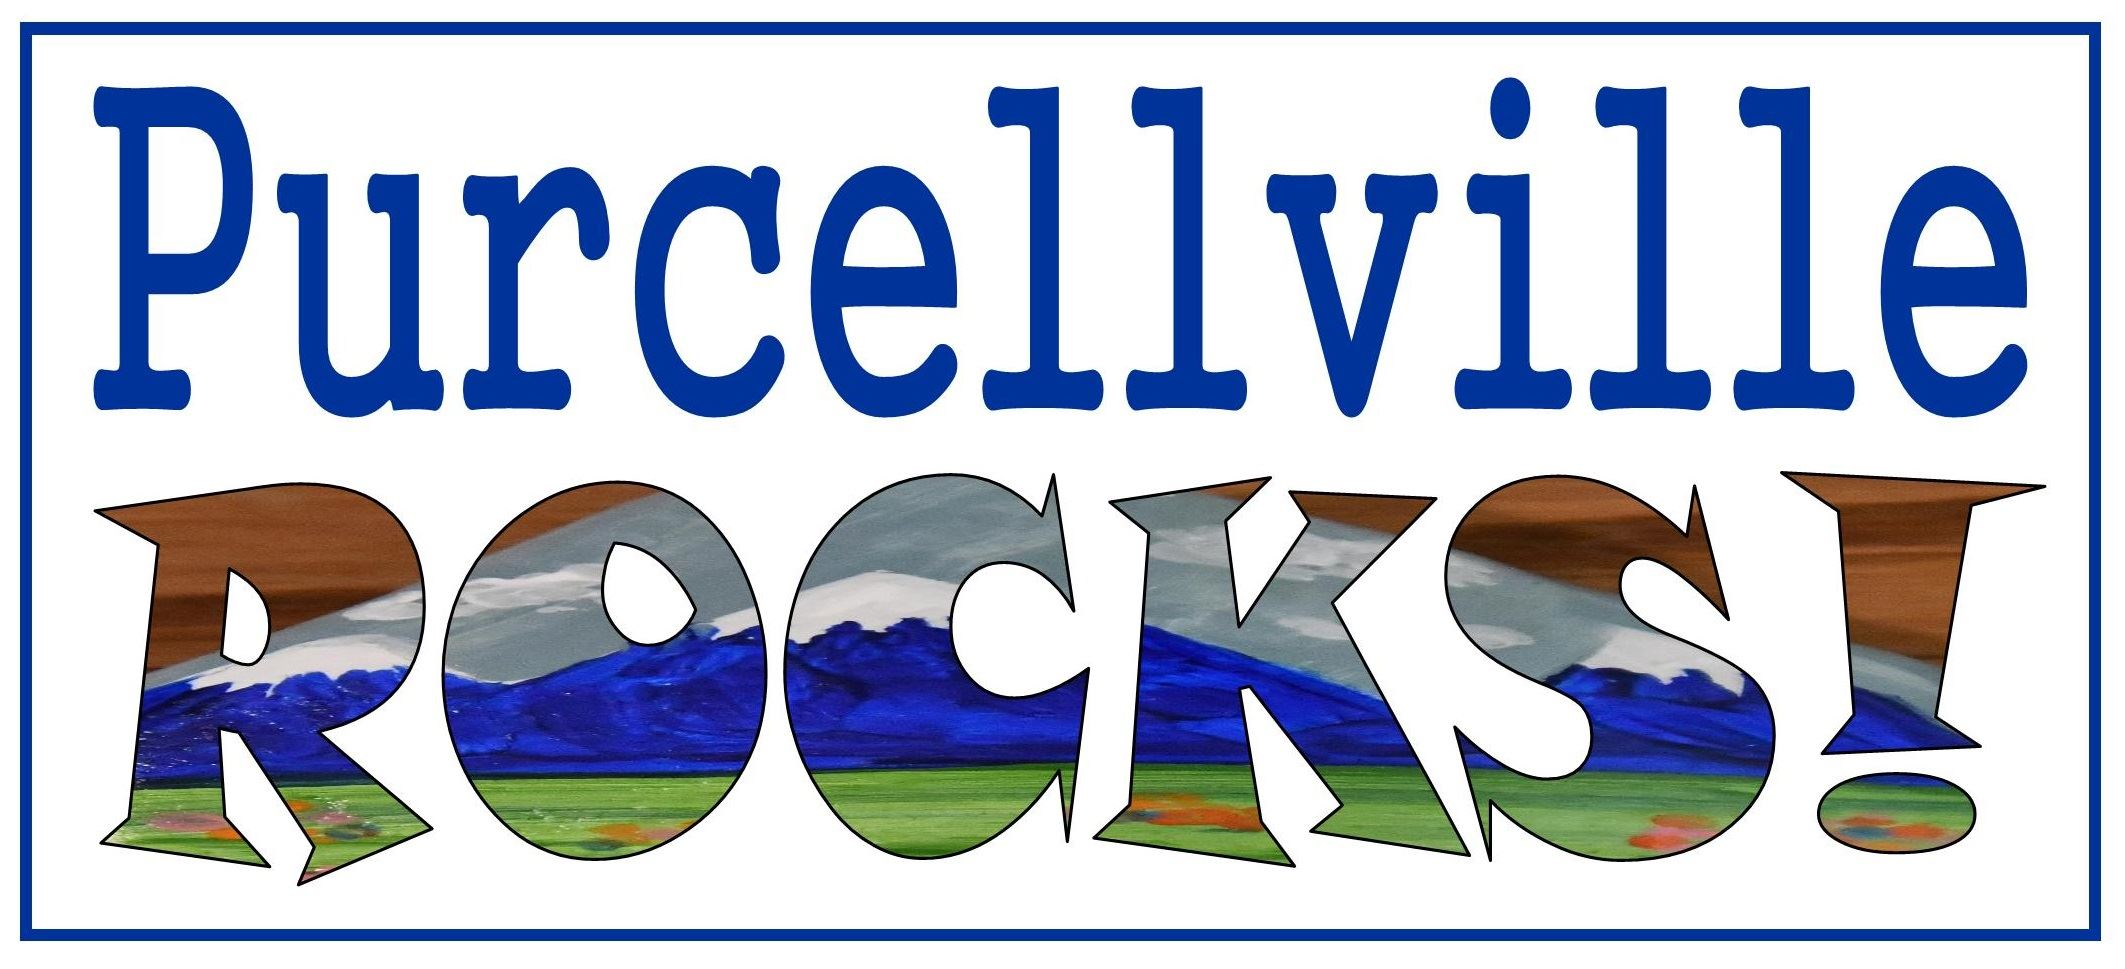 Purcellville Rocks header